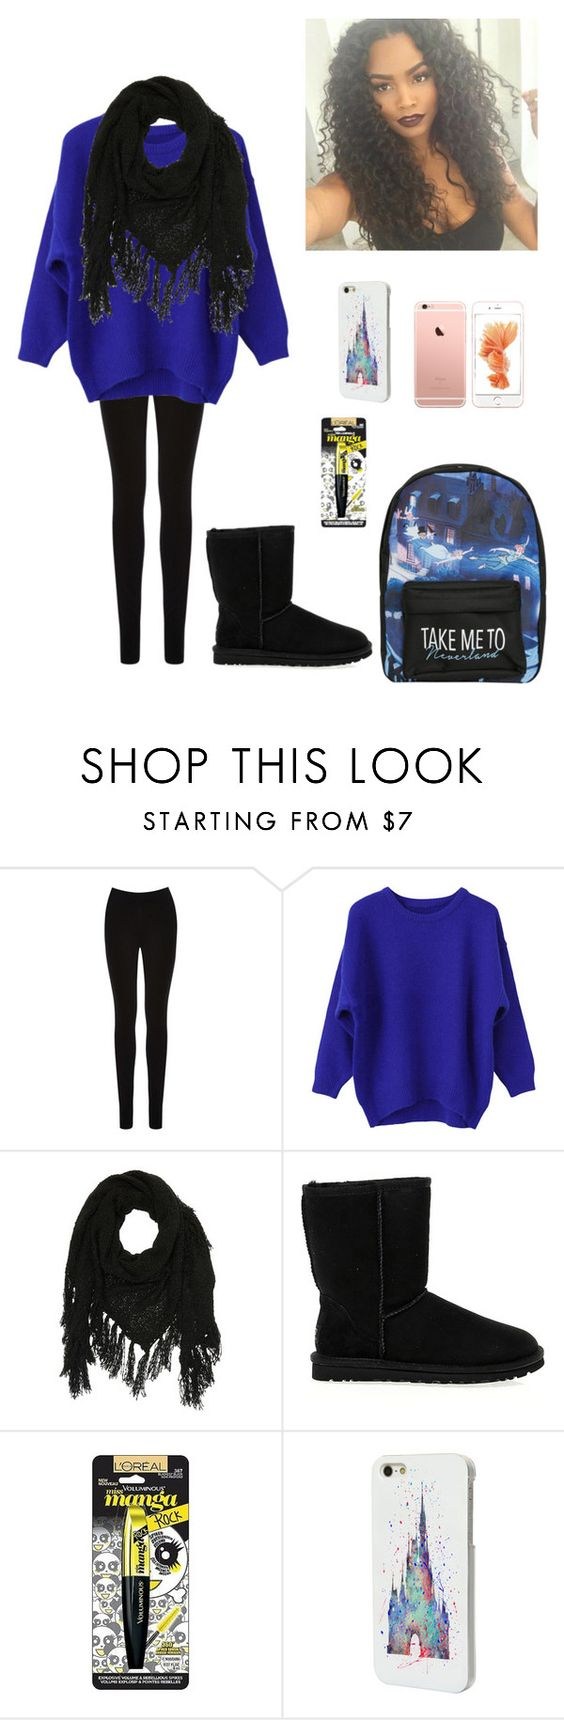 """""""Untitled #171"""" by princessoferebor ❤ liked on Polyvore featuring Oasis, Charlotte Russe, UGG Australia, L'Oréal Paris and Disney"""